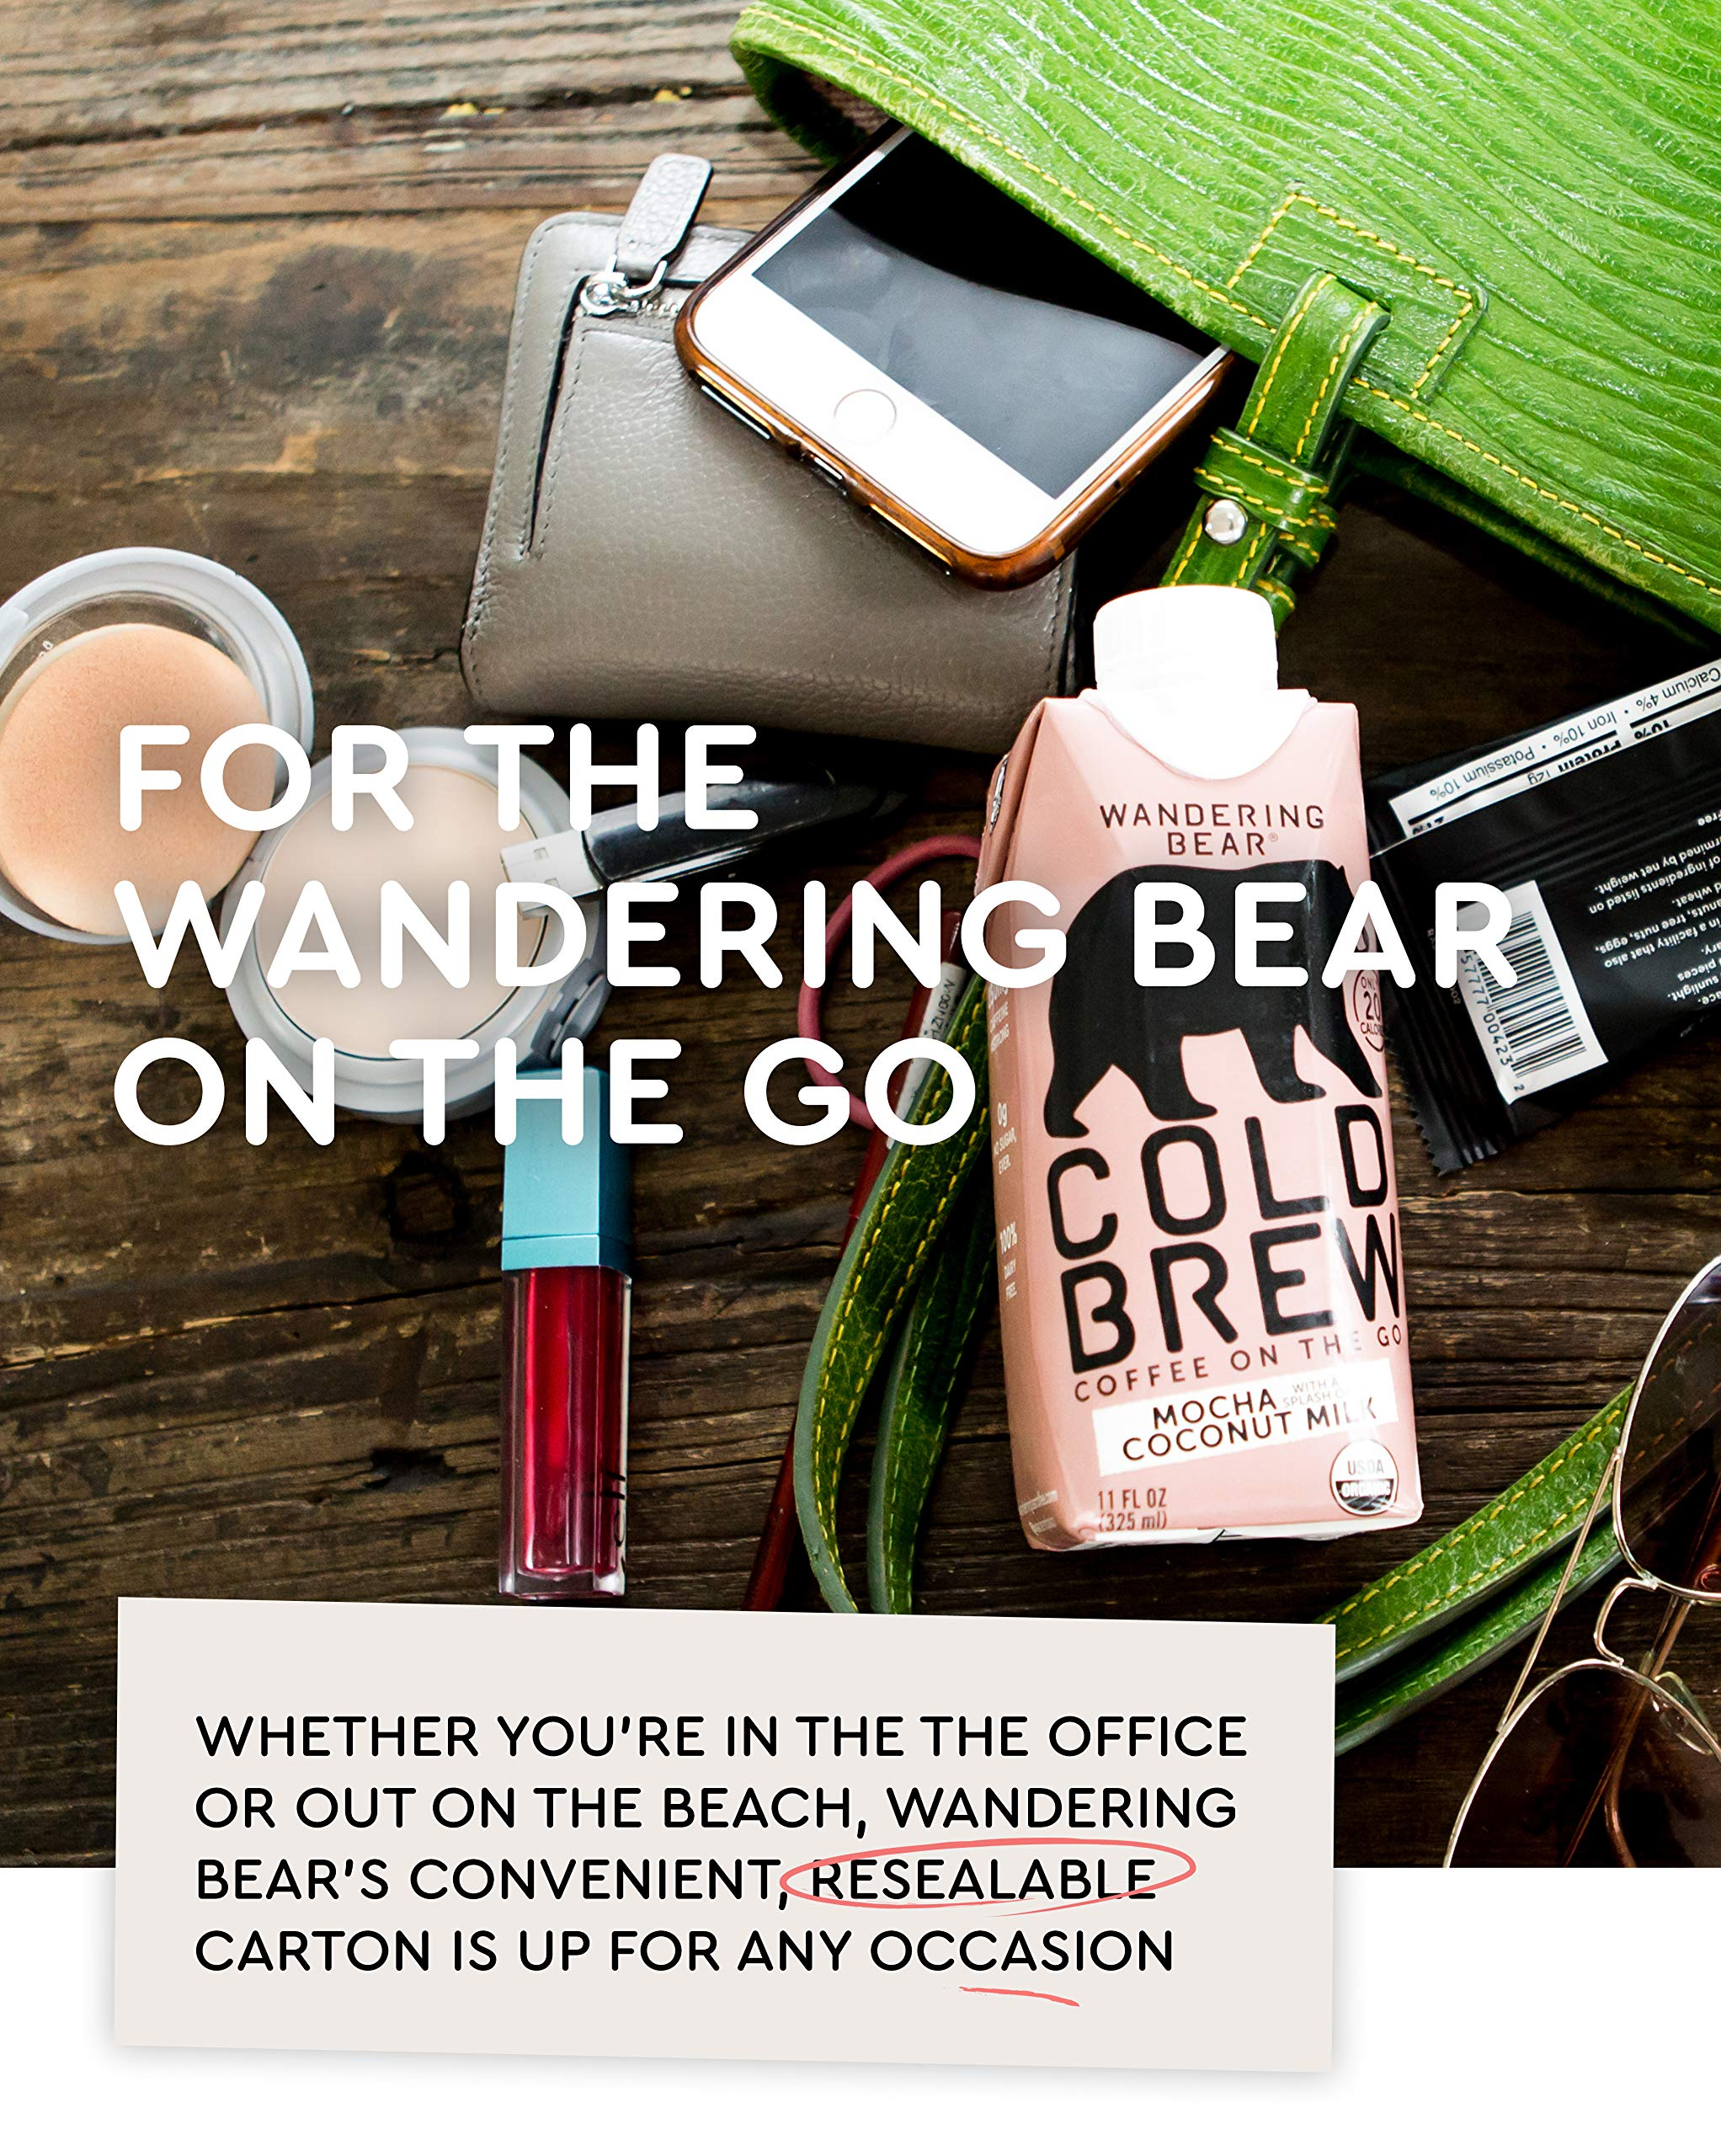 Wandering Bear Organic Cold Brew Coffee On-the-Go 11 oz Carton, Mocha With Splash of Coconut Milk, No Sugar, Ready to Drink, Not a Concentrate (Pack of 12) by Wandering Bear (Image #6)